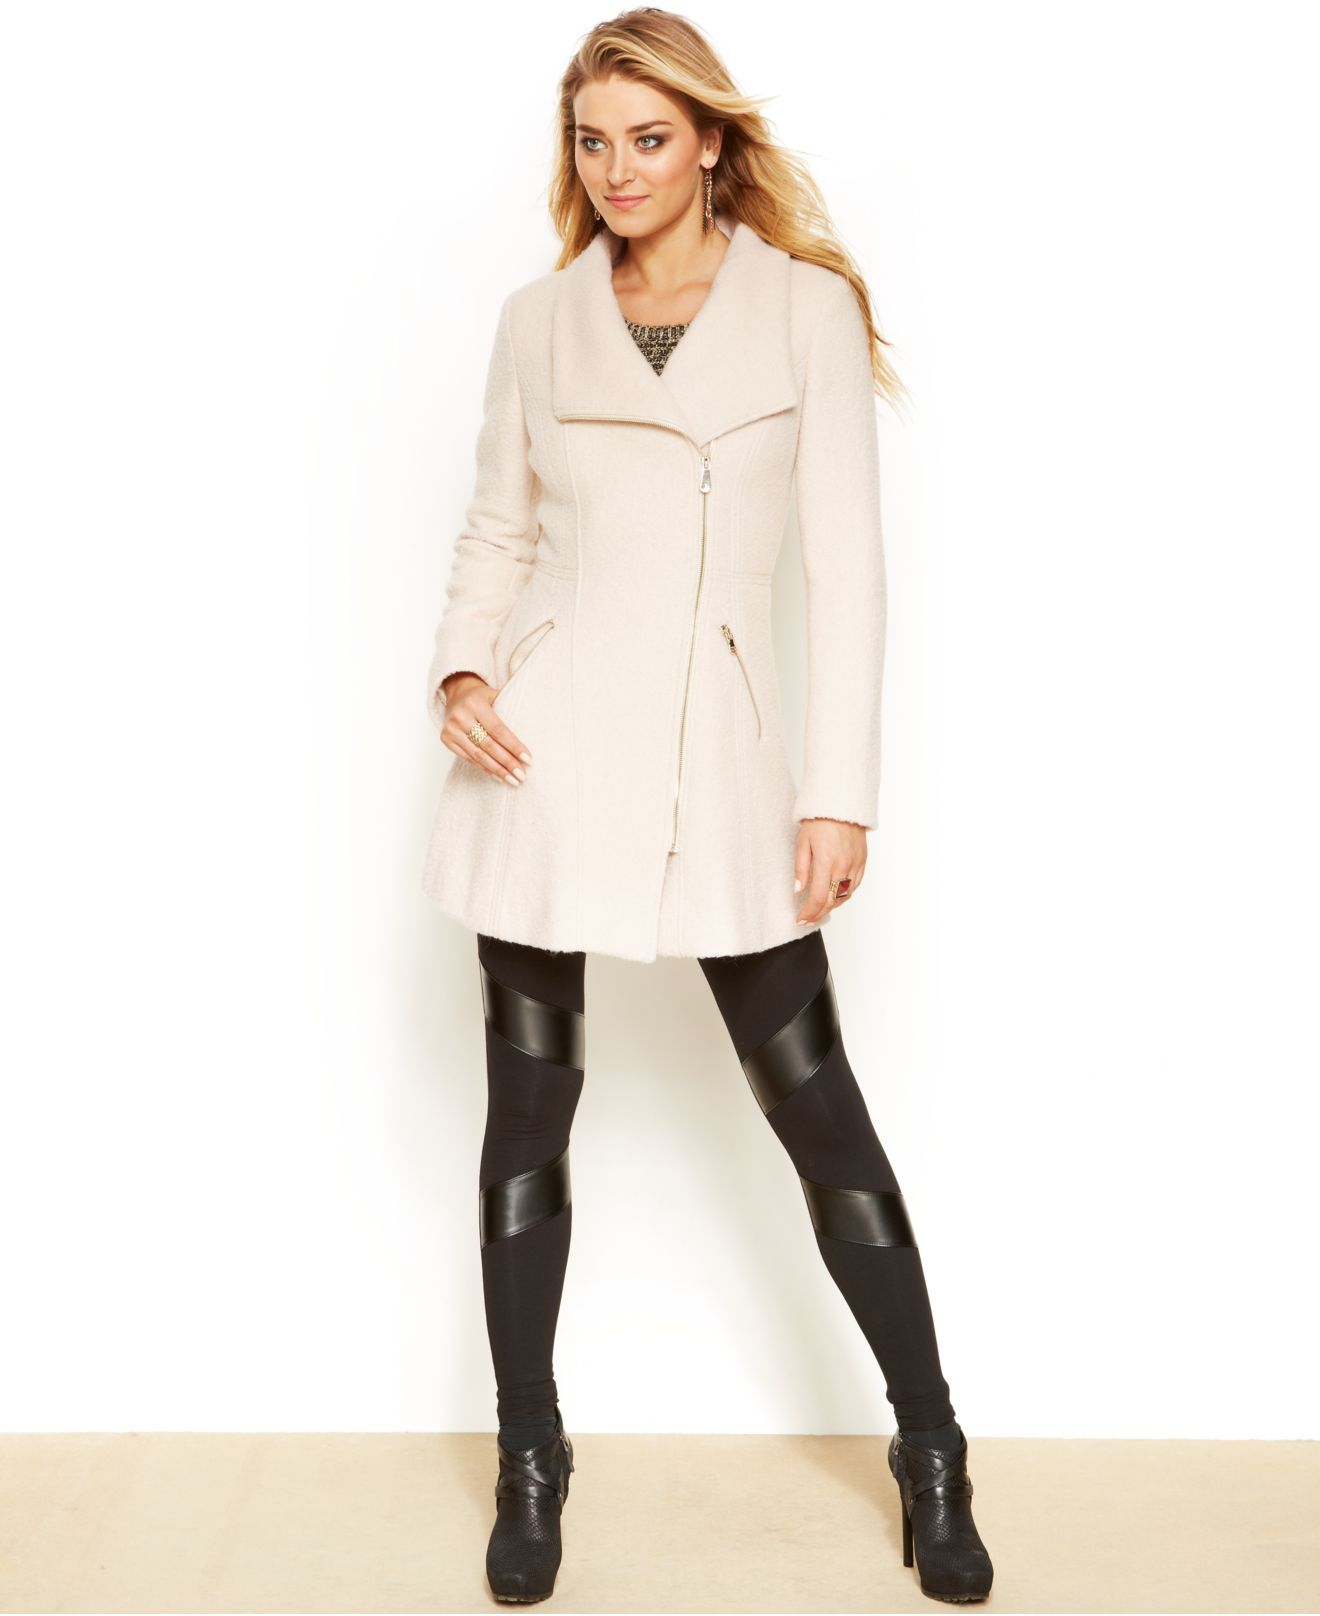 Guess Asymmetrical Zippered Wool Coat in White | Lyst